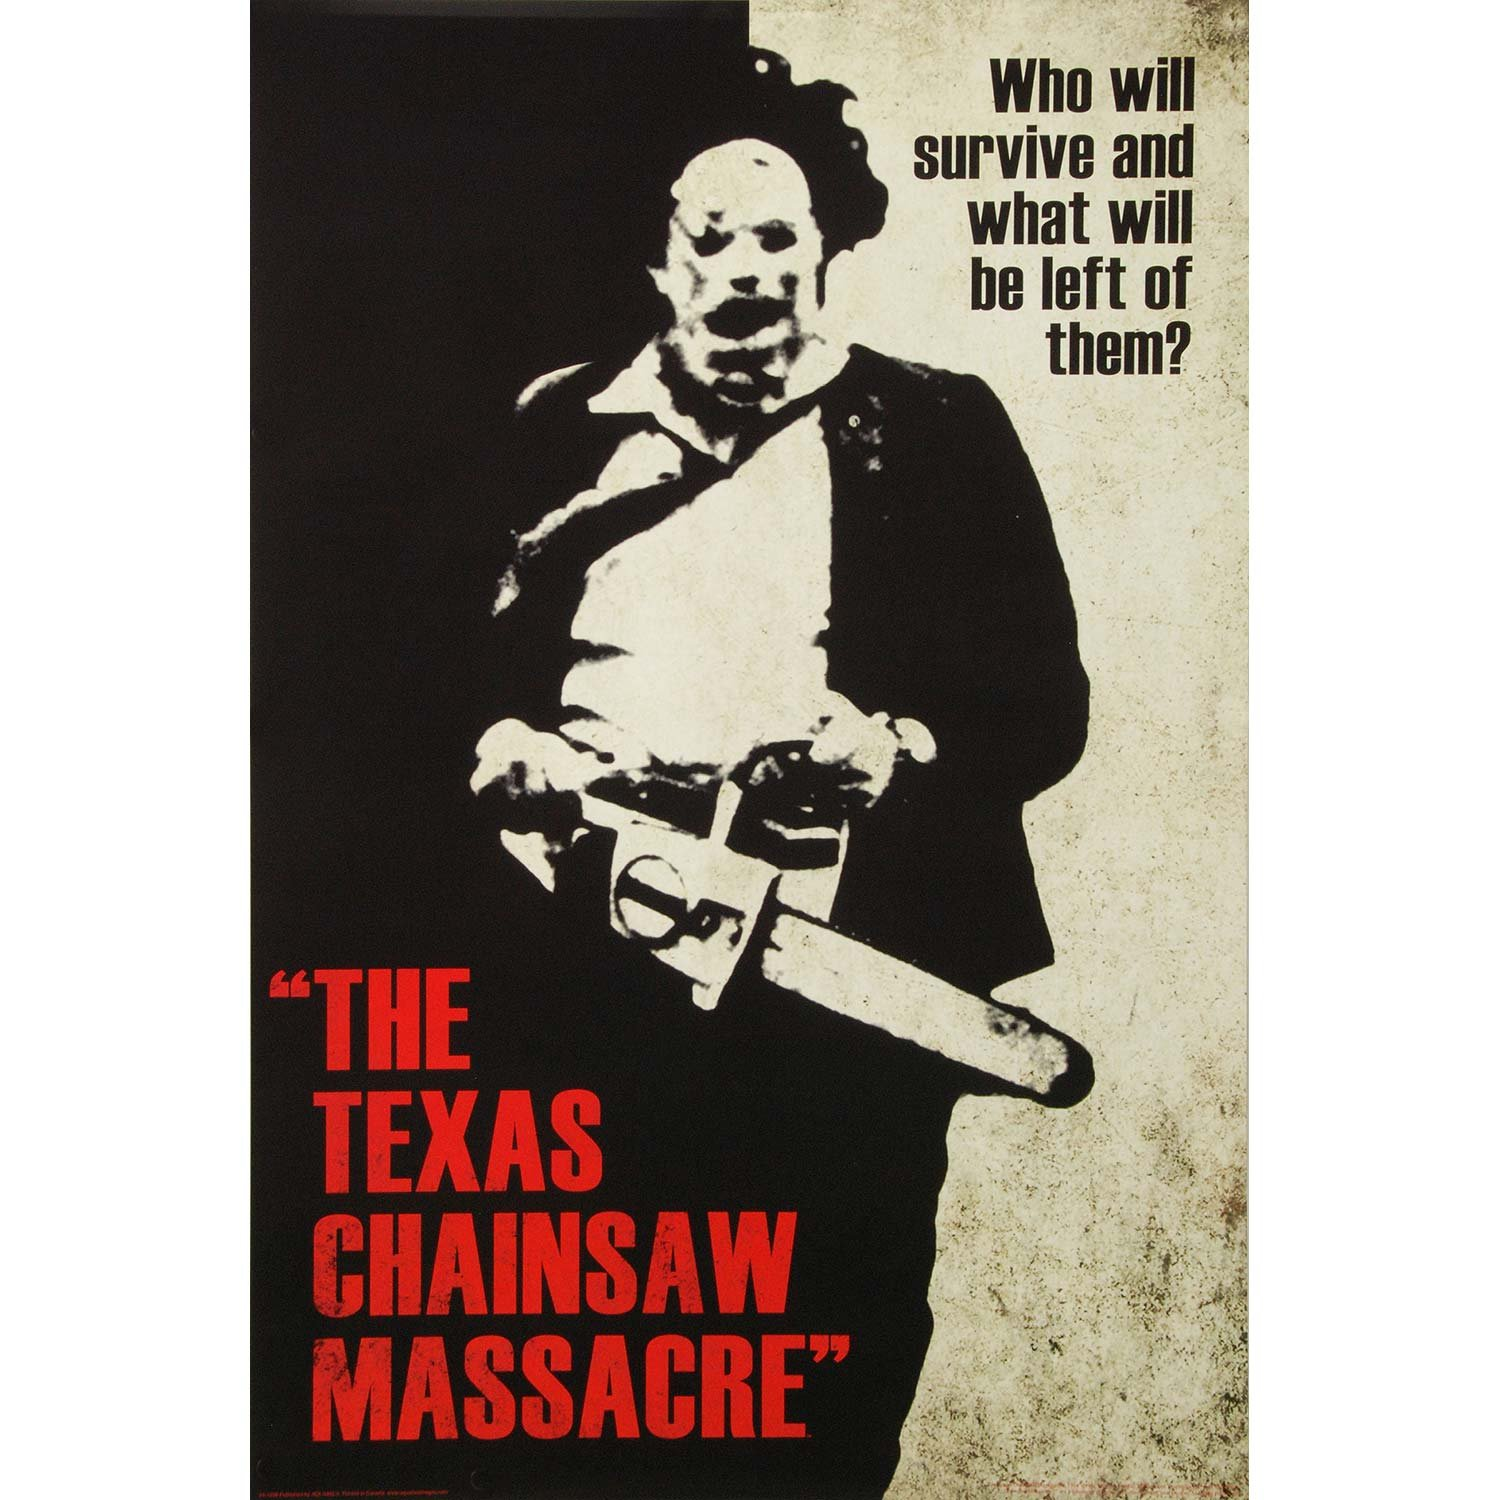 Texas Chainsaw Massacre- Leatherface Silhouette Poster 24 x 36in